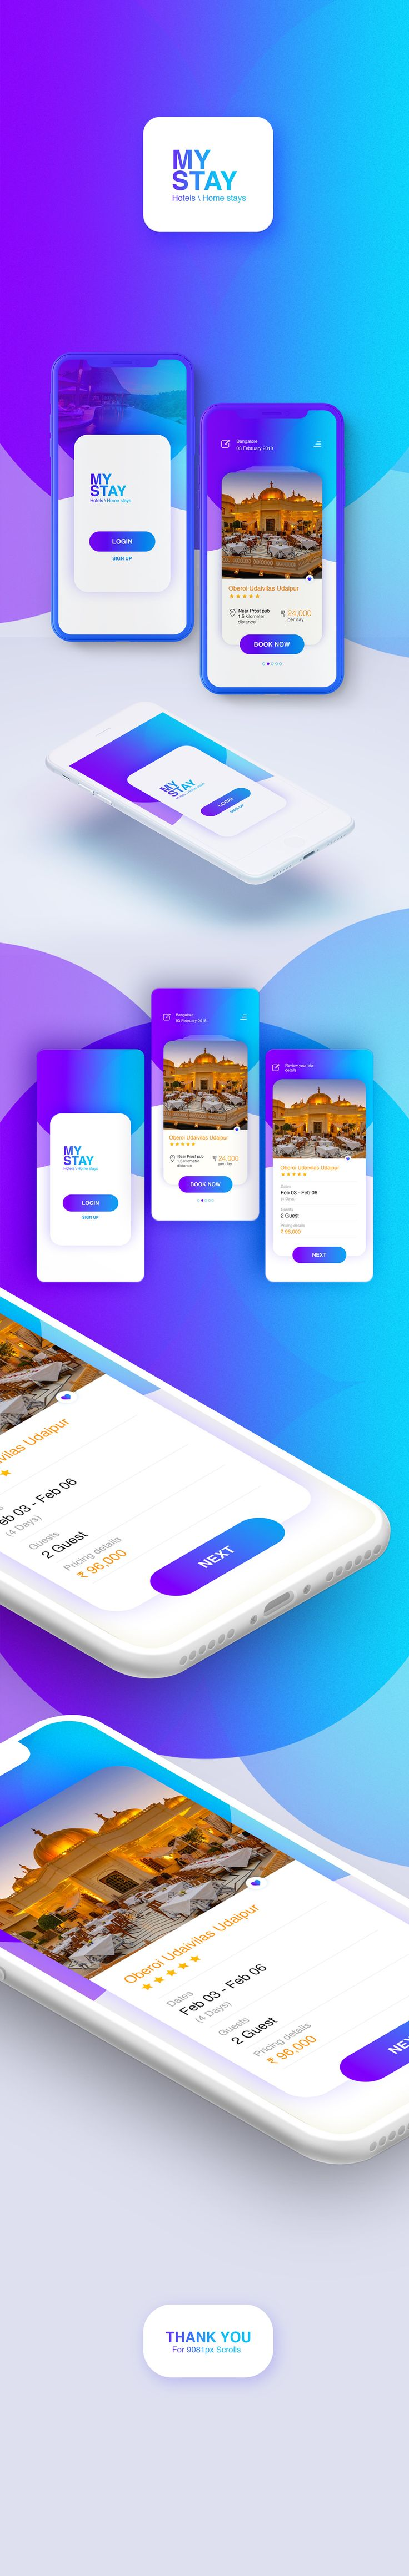 UI Design for Hotel booking